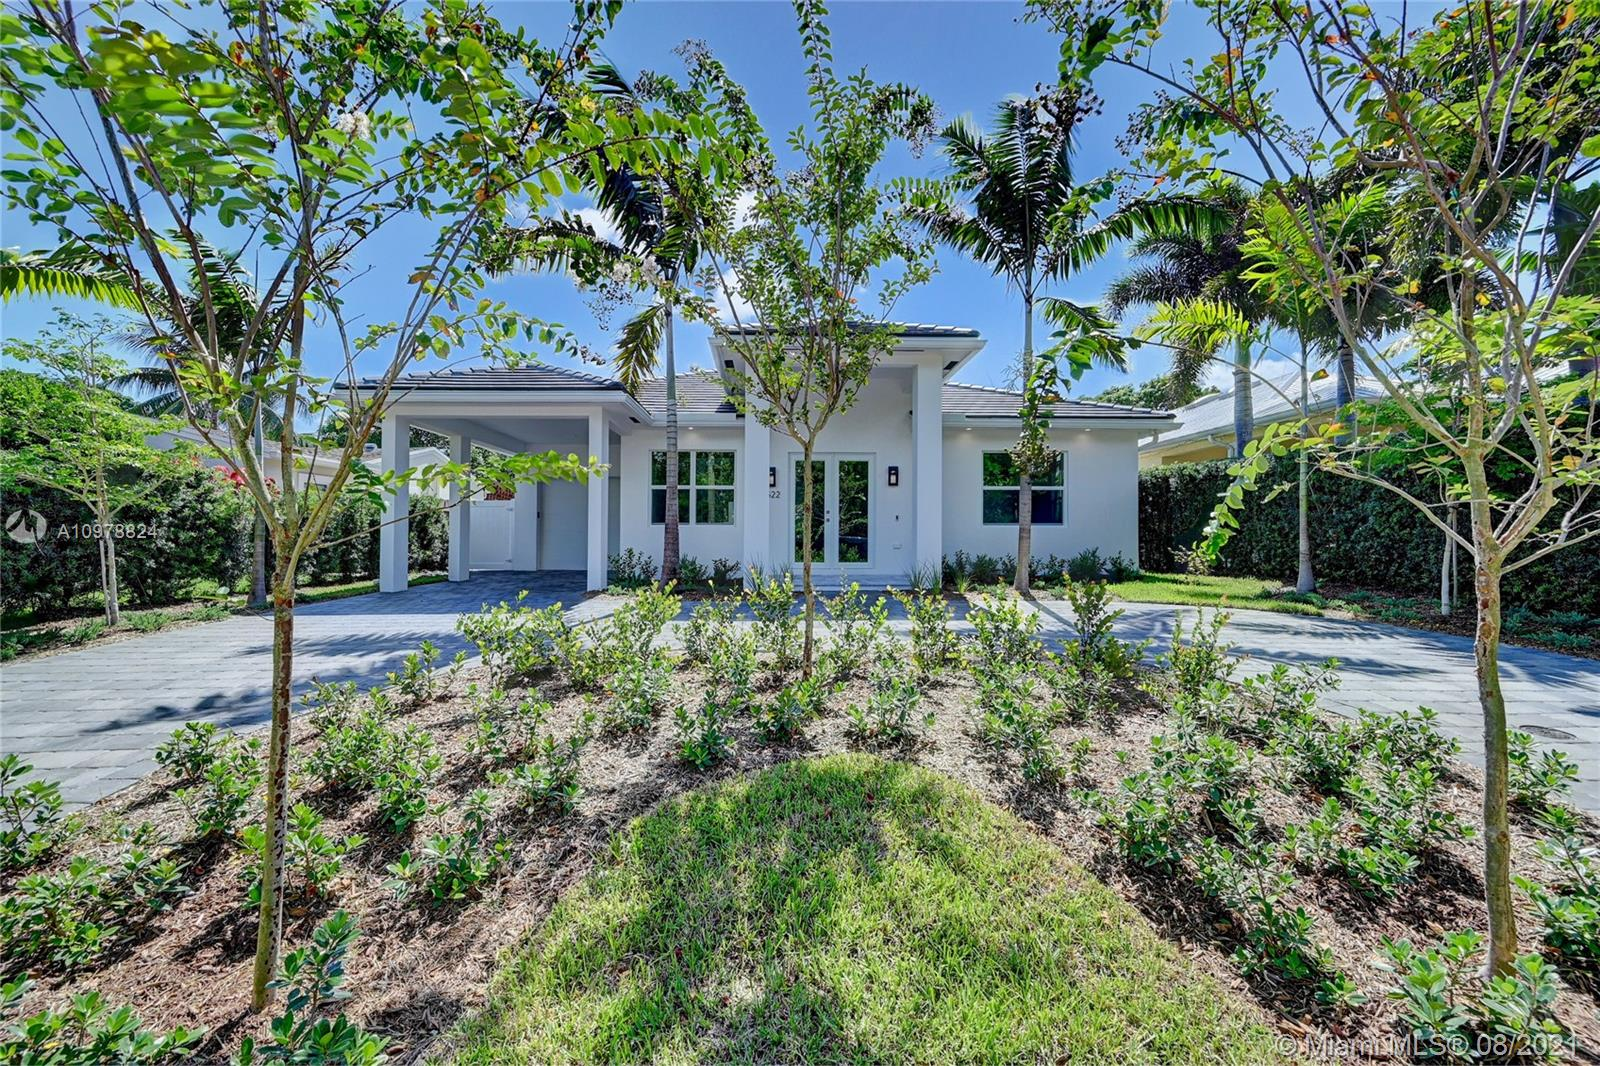 Poinsettia Heights - 1522 NE 17th Way, Fort Lauderdale, FL 33304